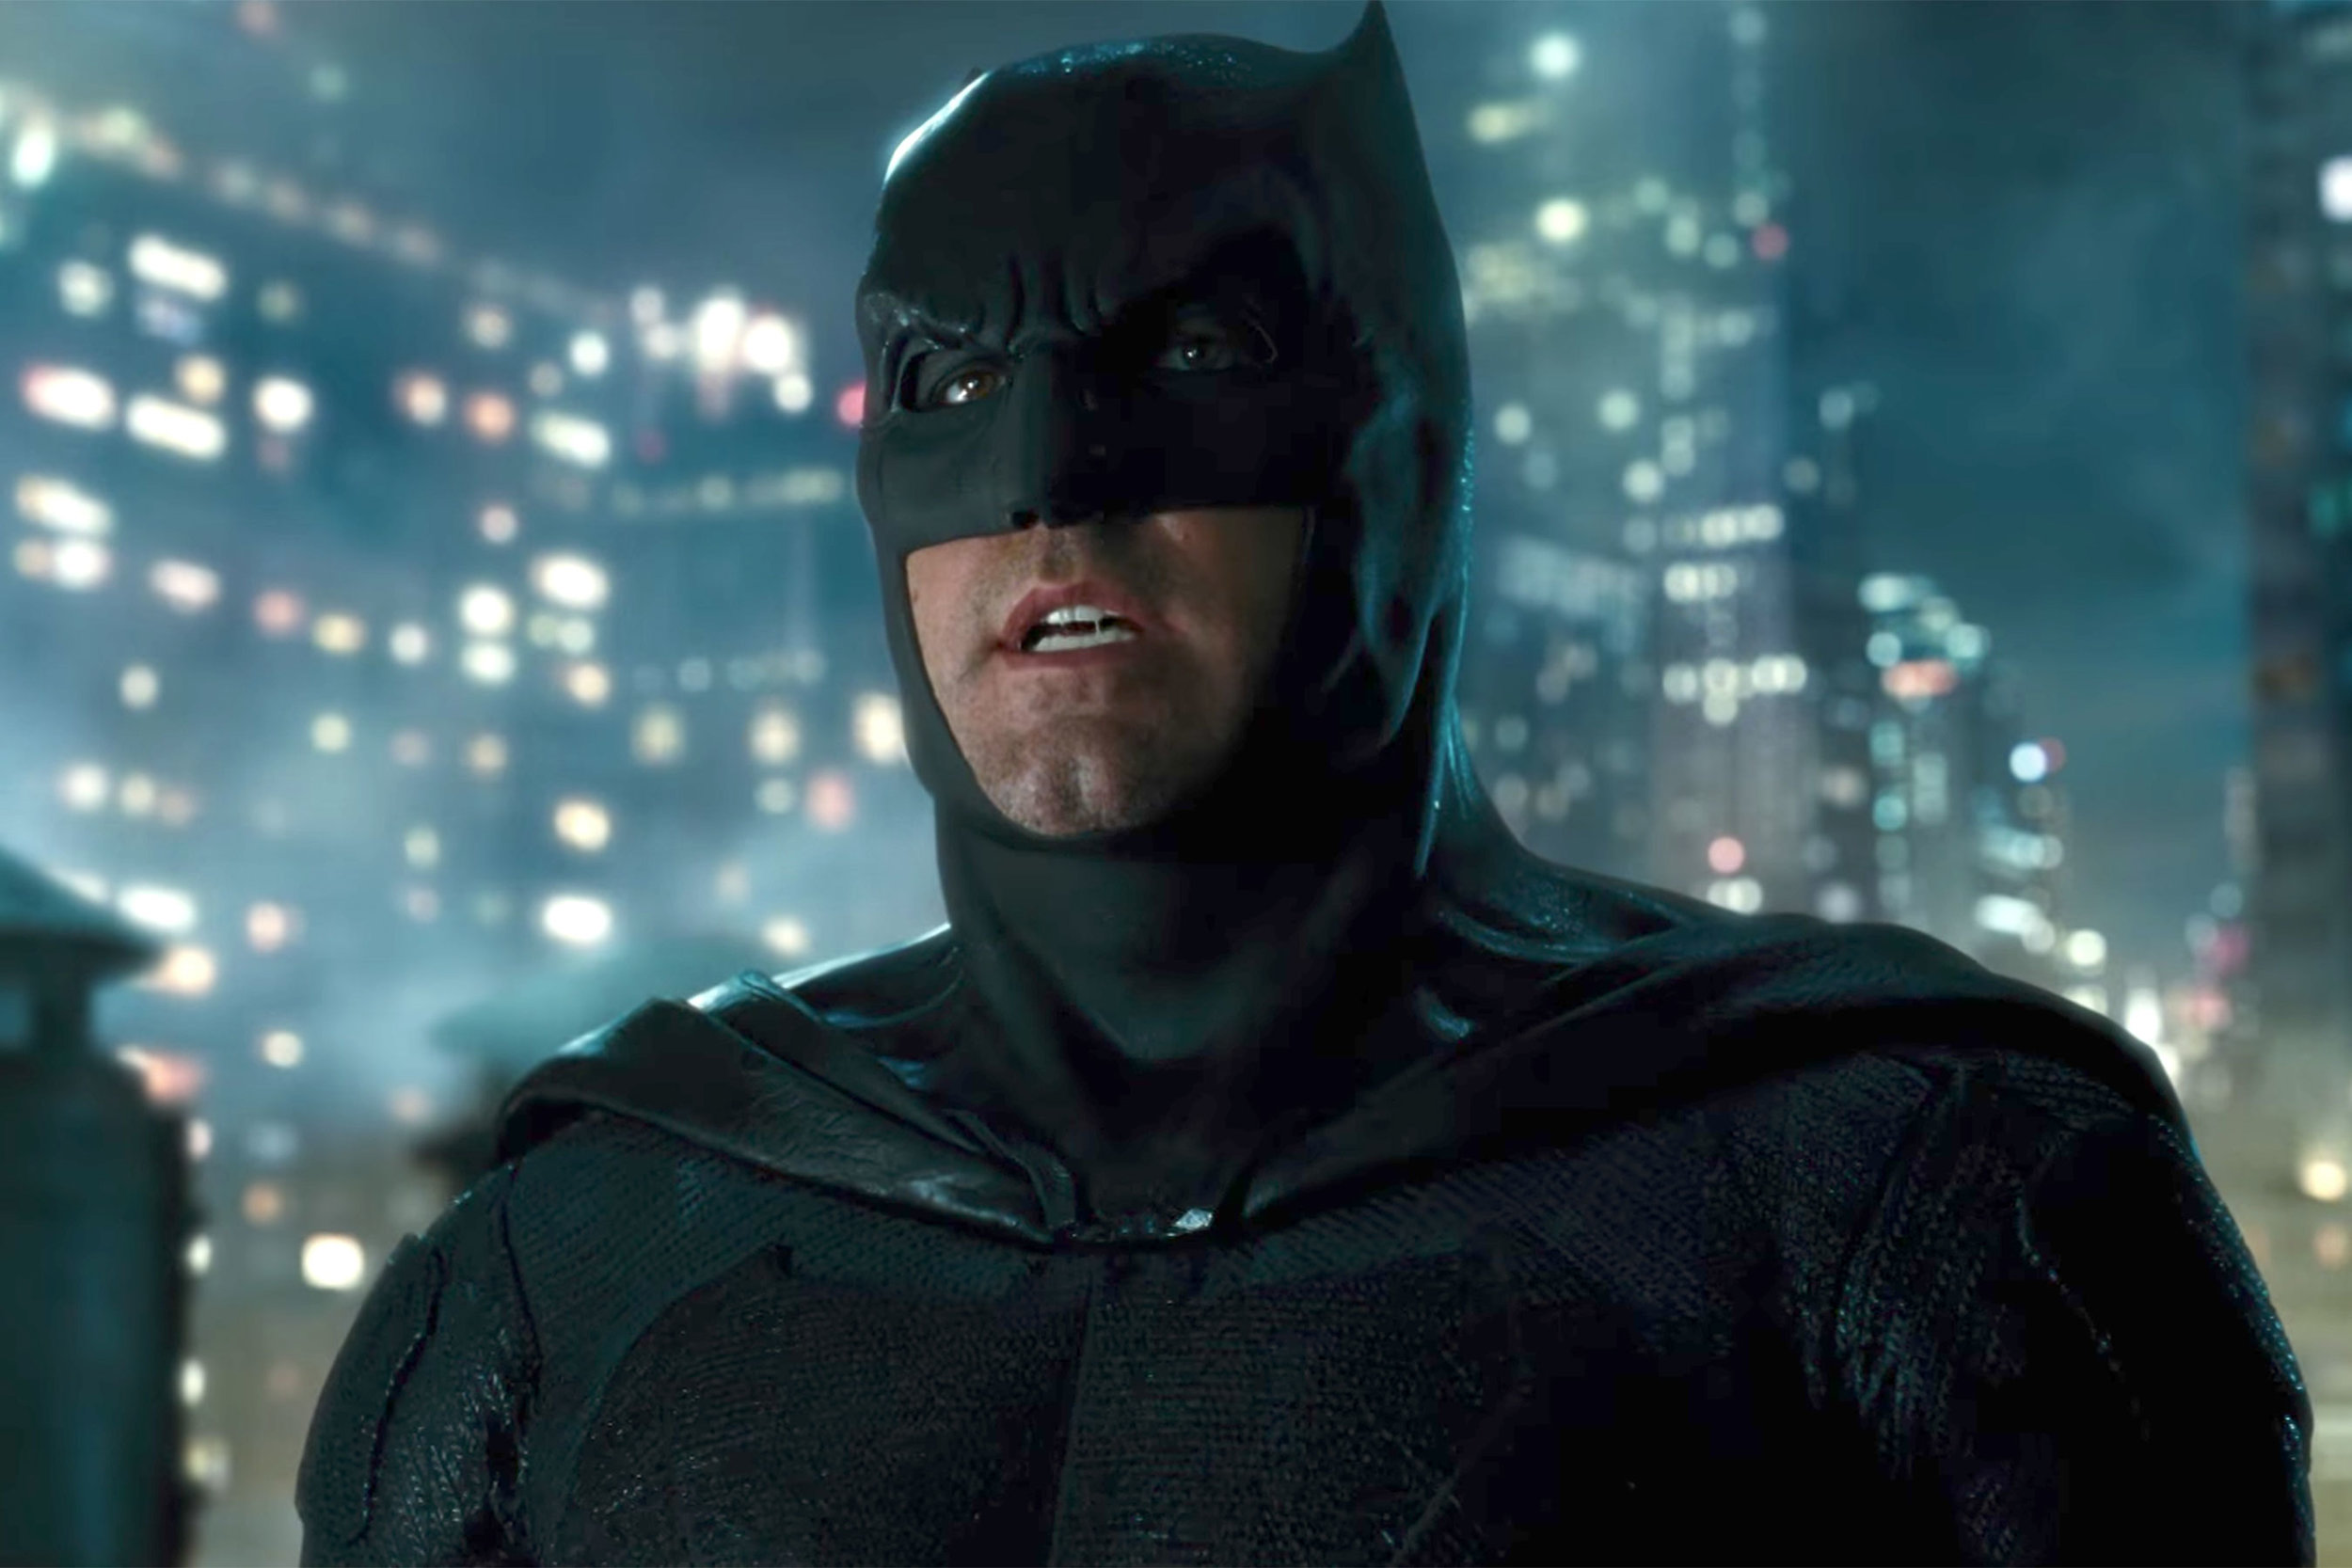 ben-affleck-talks-about-justice-league-and-says-batman-will-be-more-traditional-and-heroic11